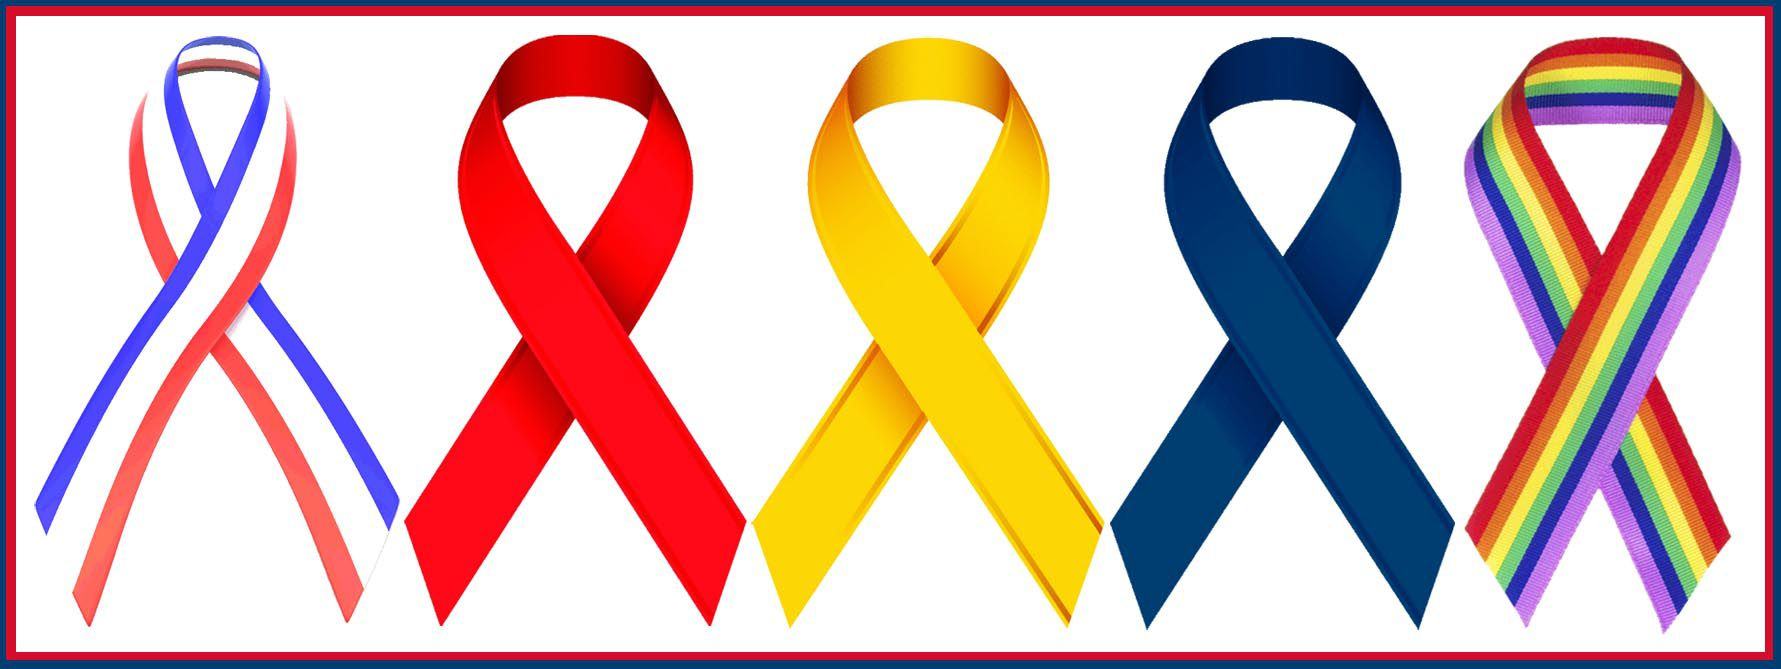 awareness ribbons  list of colors and meanings